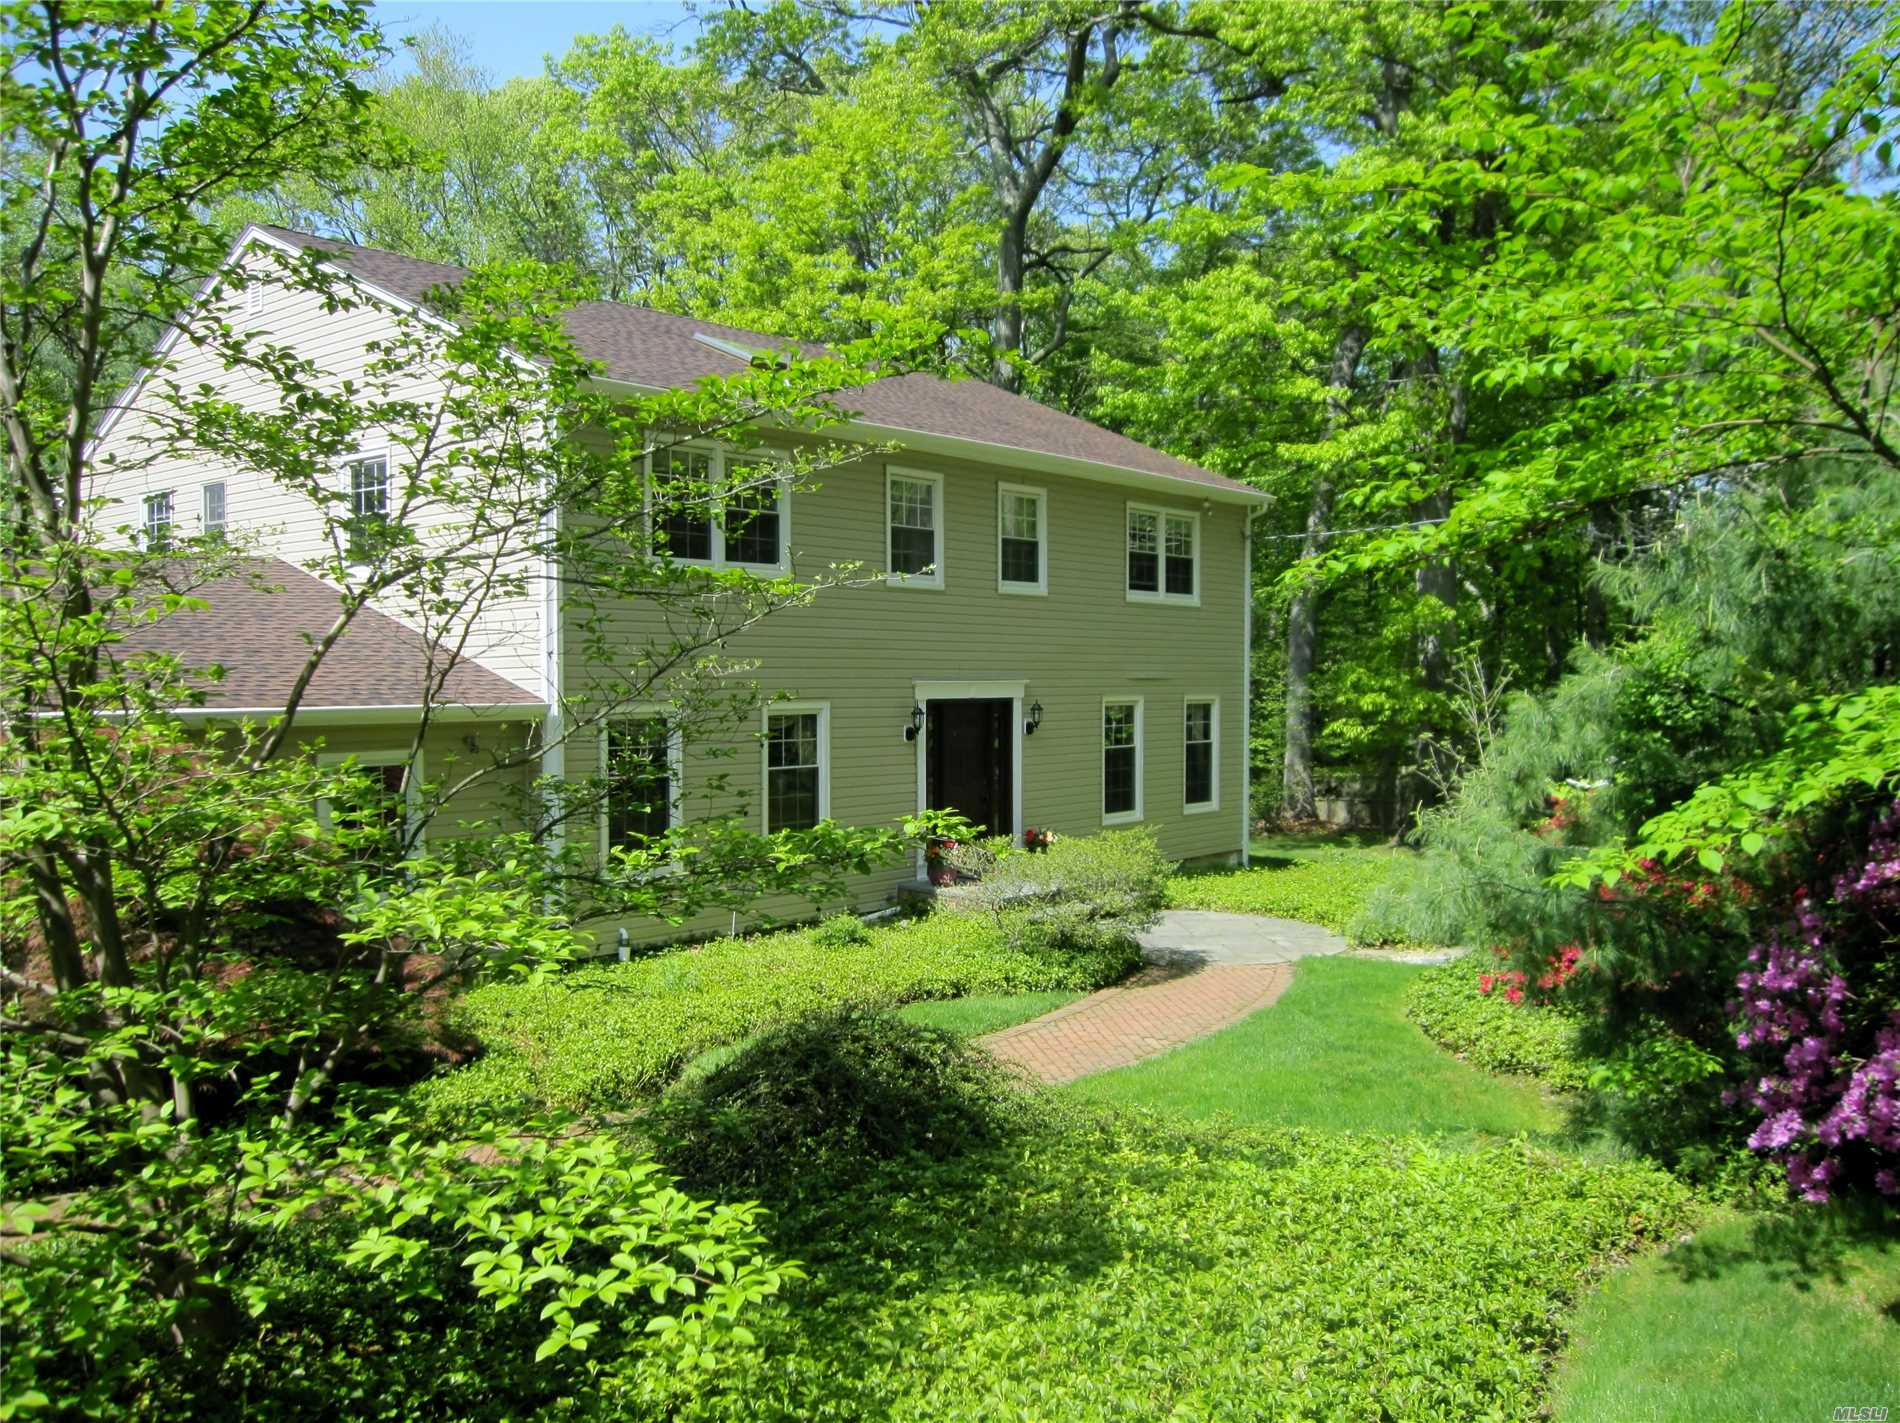 Classic Center Hall Colonial with spacious rooms and ideal flow for large-scale entertaining. In cul-de-sac location and backing a nature preserve, this lovely home features many recent updates and offers a first floor bedroom suite with a private entrance. Formal Dining Room with elegant built-ins, Den with fireplace and bright eat-in-kitchen that opens to Large deck overlooking heated pool. Gorgeous property with low taxes complete this wonderful offering!